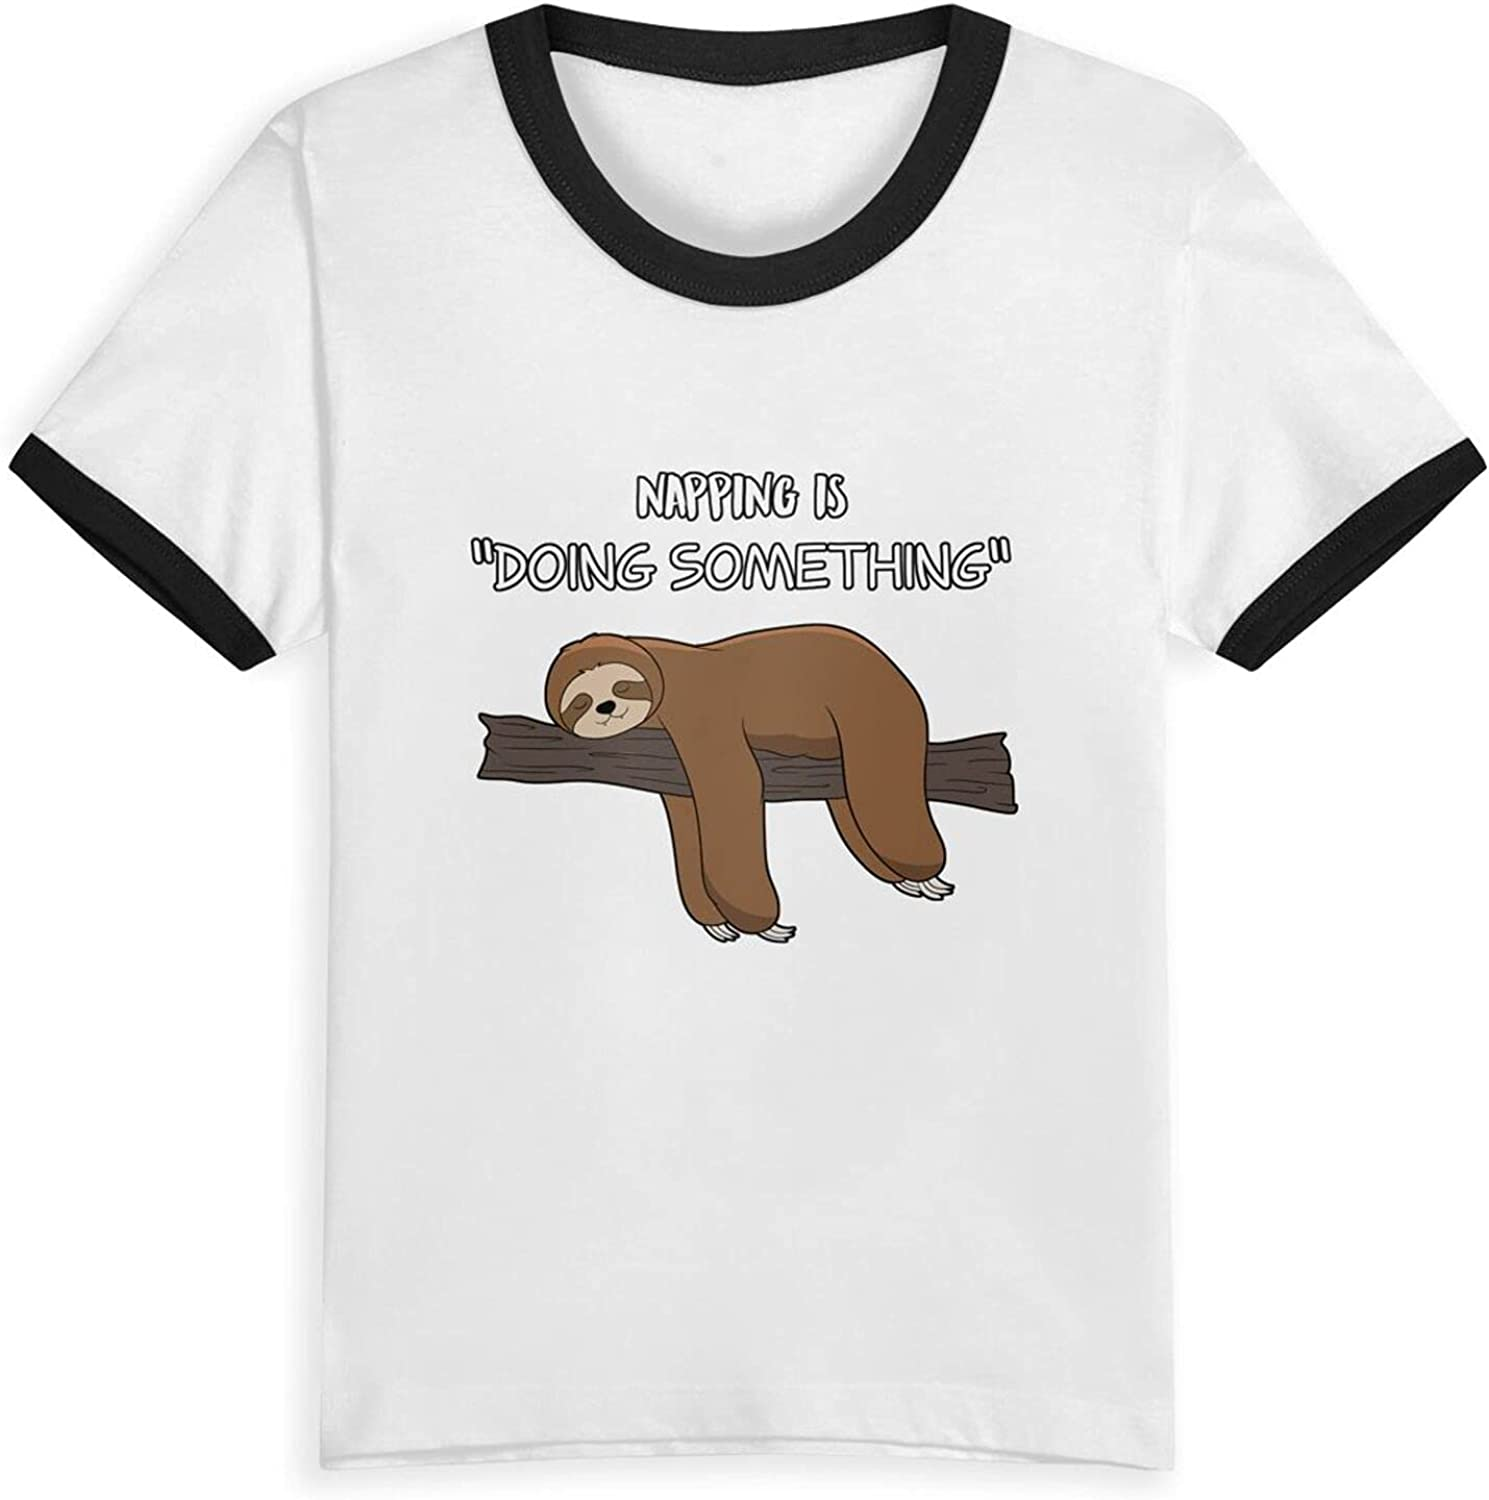 Napping is Doing Something T-Shirts Novelty for Kids Tees with Cool Designs